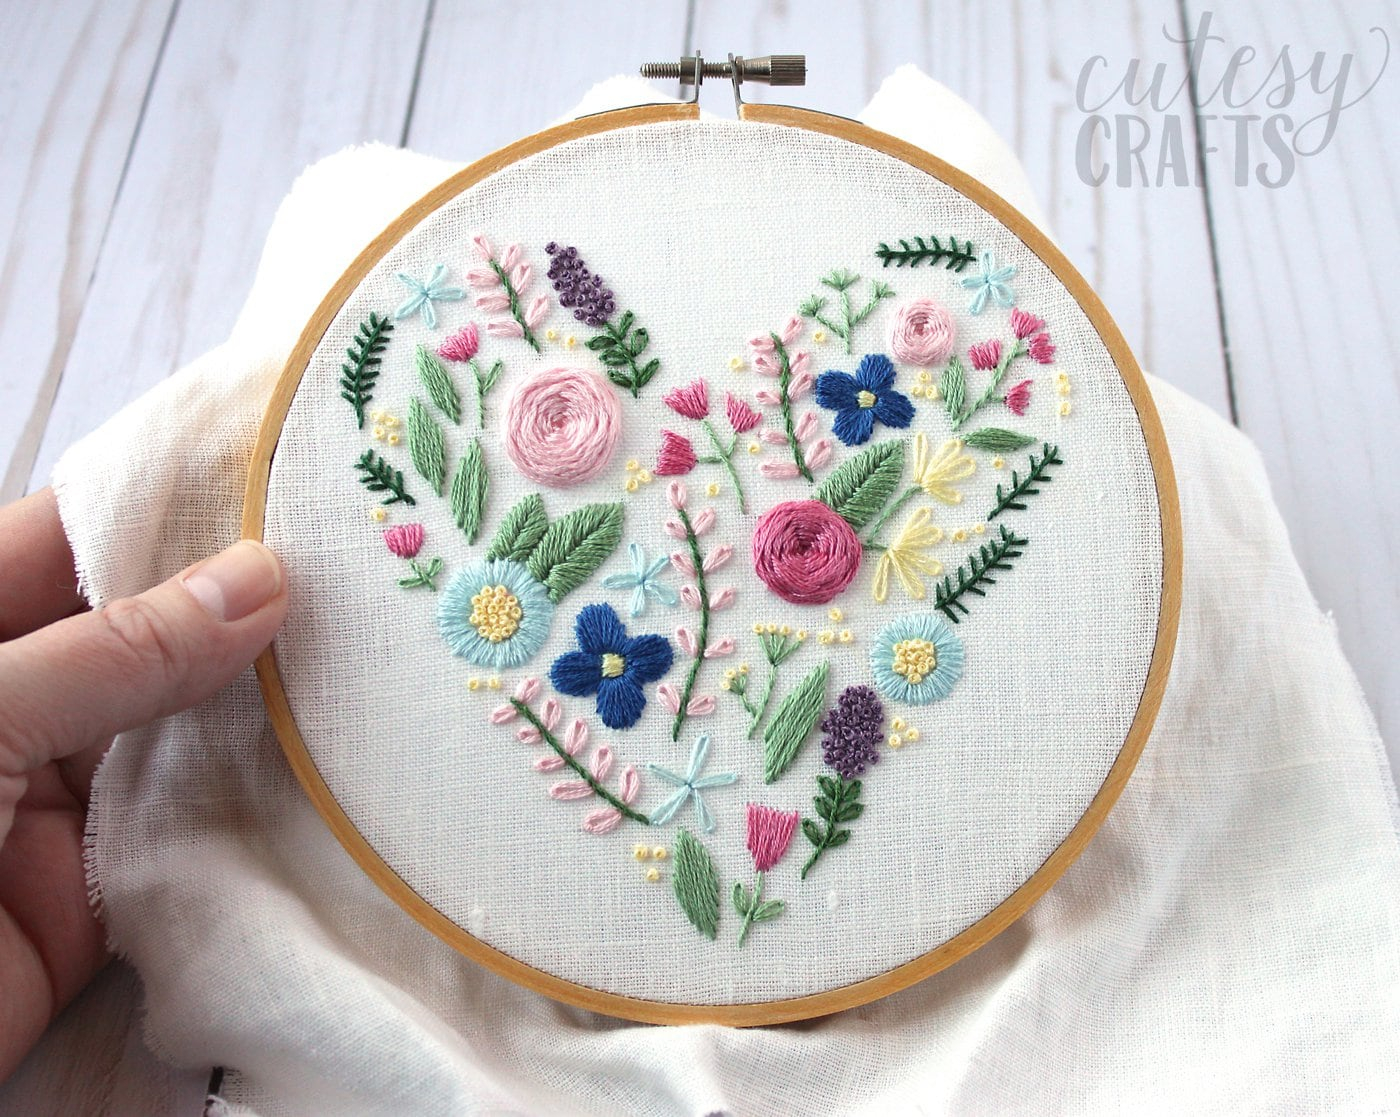 Peacock Hand Embroidery Pattern Floral Heart Hand Embroidery Pattern The Polka Dot Chair